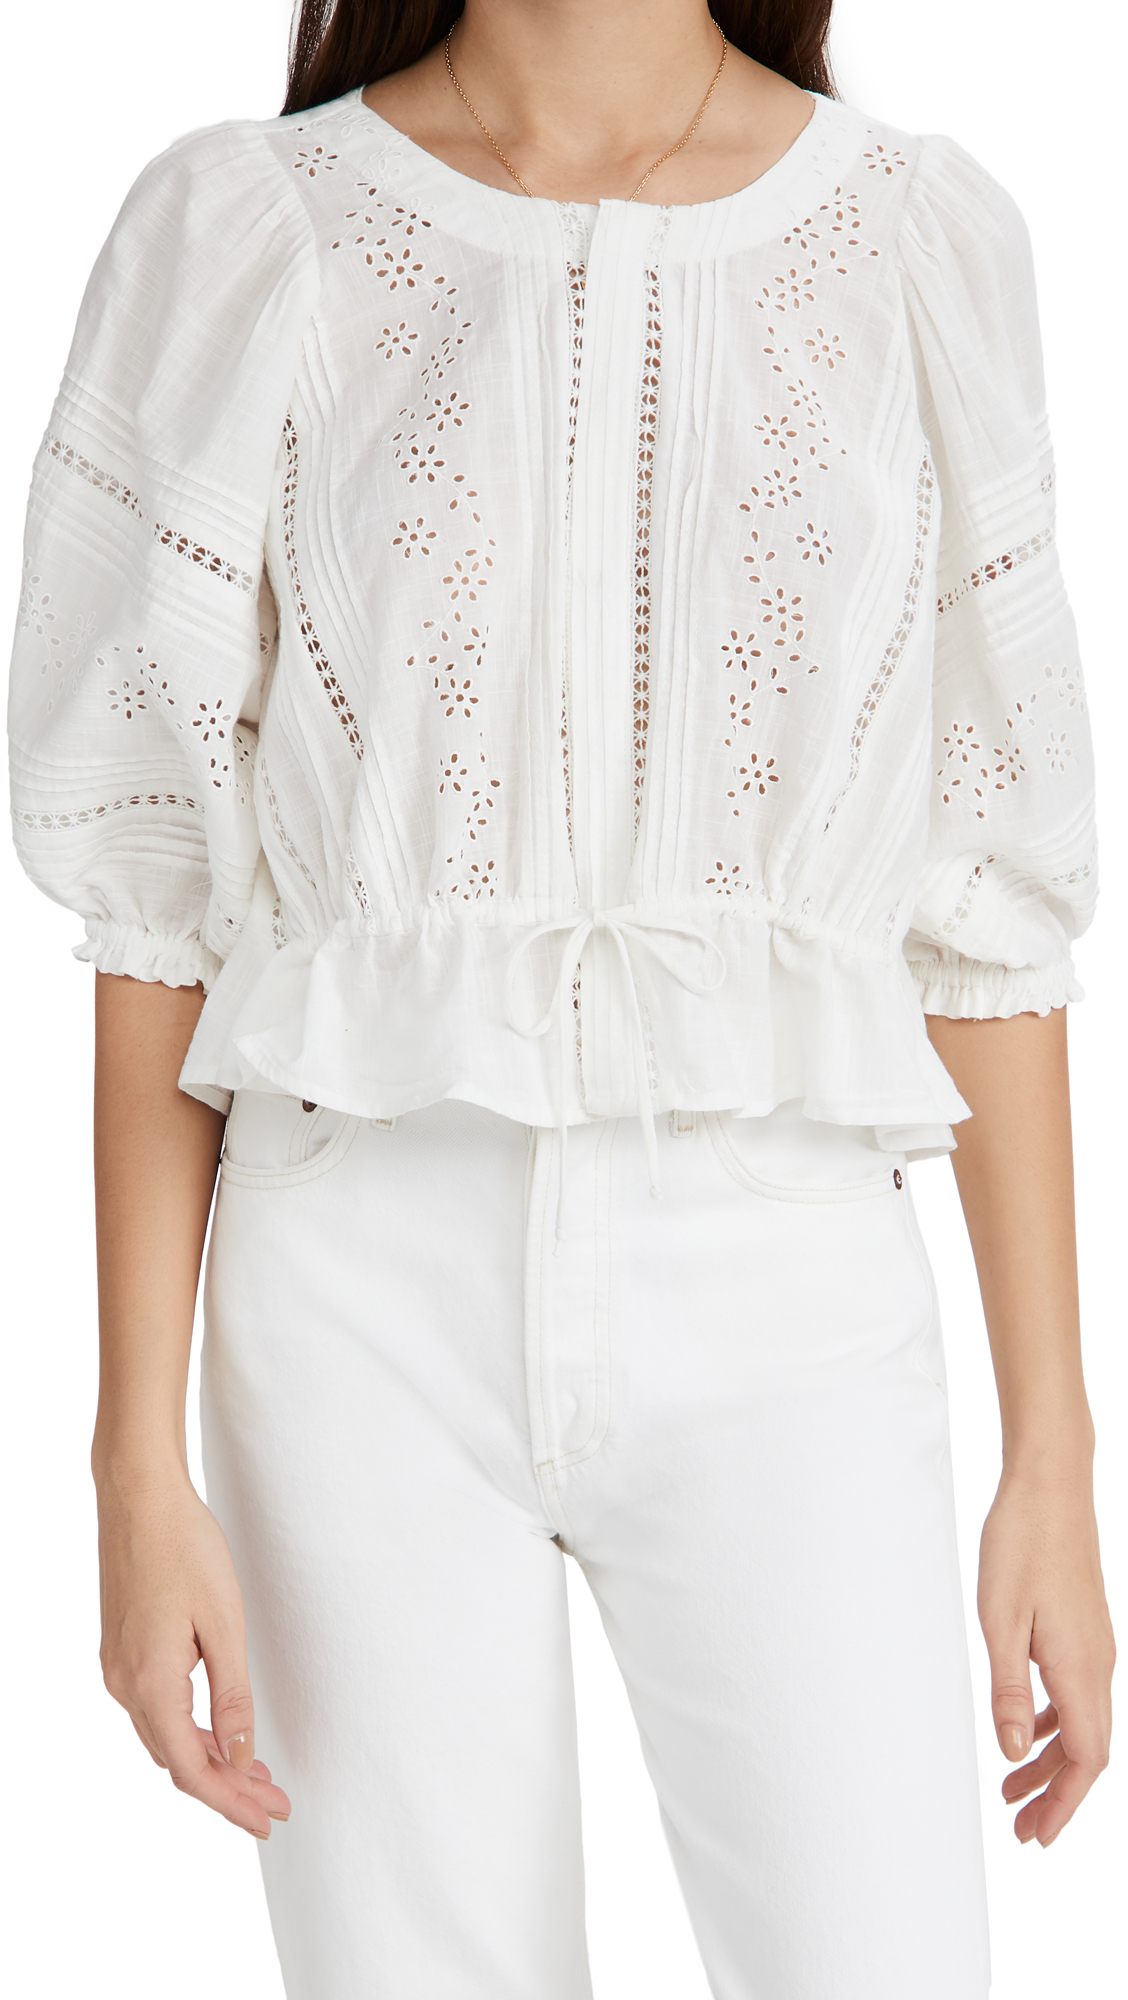 Free People Cottons DAISY CHAINS EYELET TOP